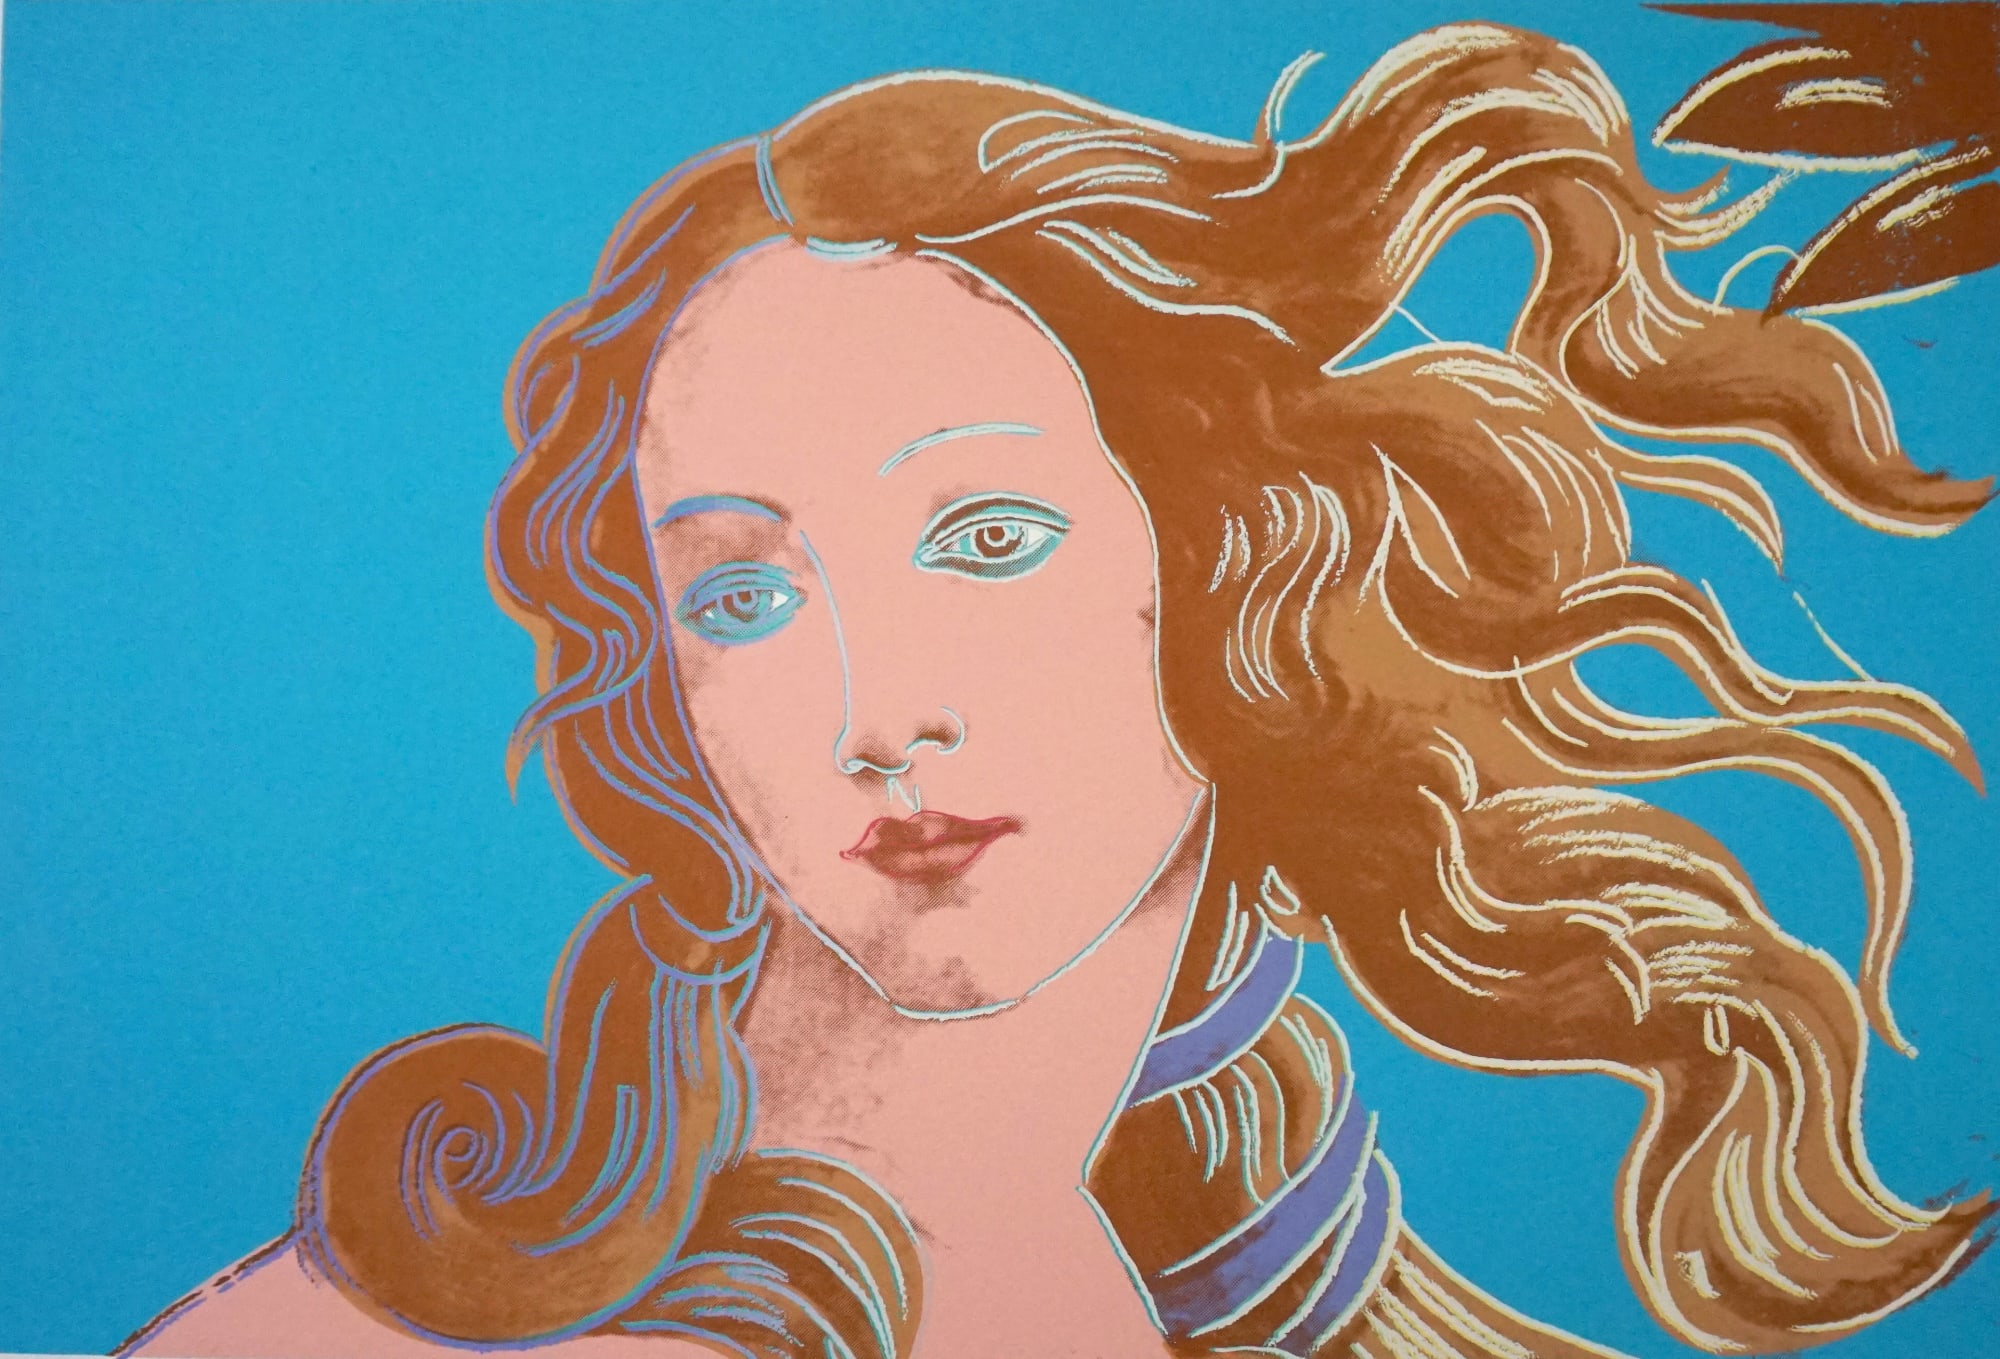 Details of Renaissance Paintings (Sandro Botticelli, Birth of Venus, 1482), 1984, by Andy Warhol, from the Portfolio of four Screenprints, Edition 70, at Coskun Fine Art